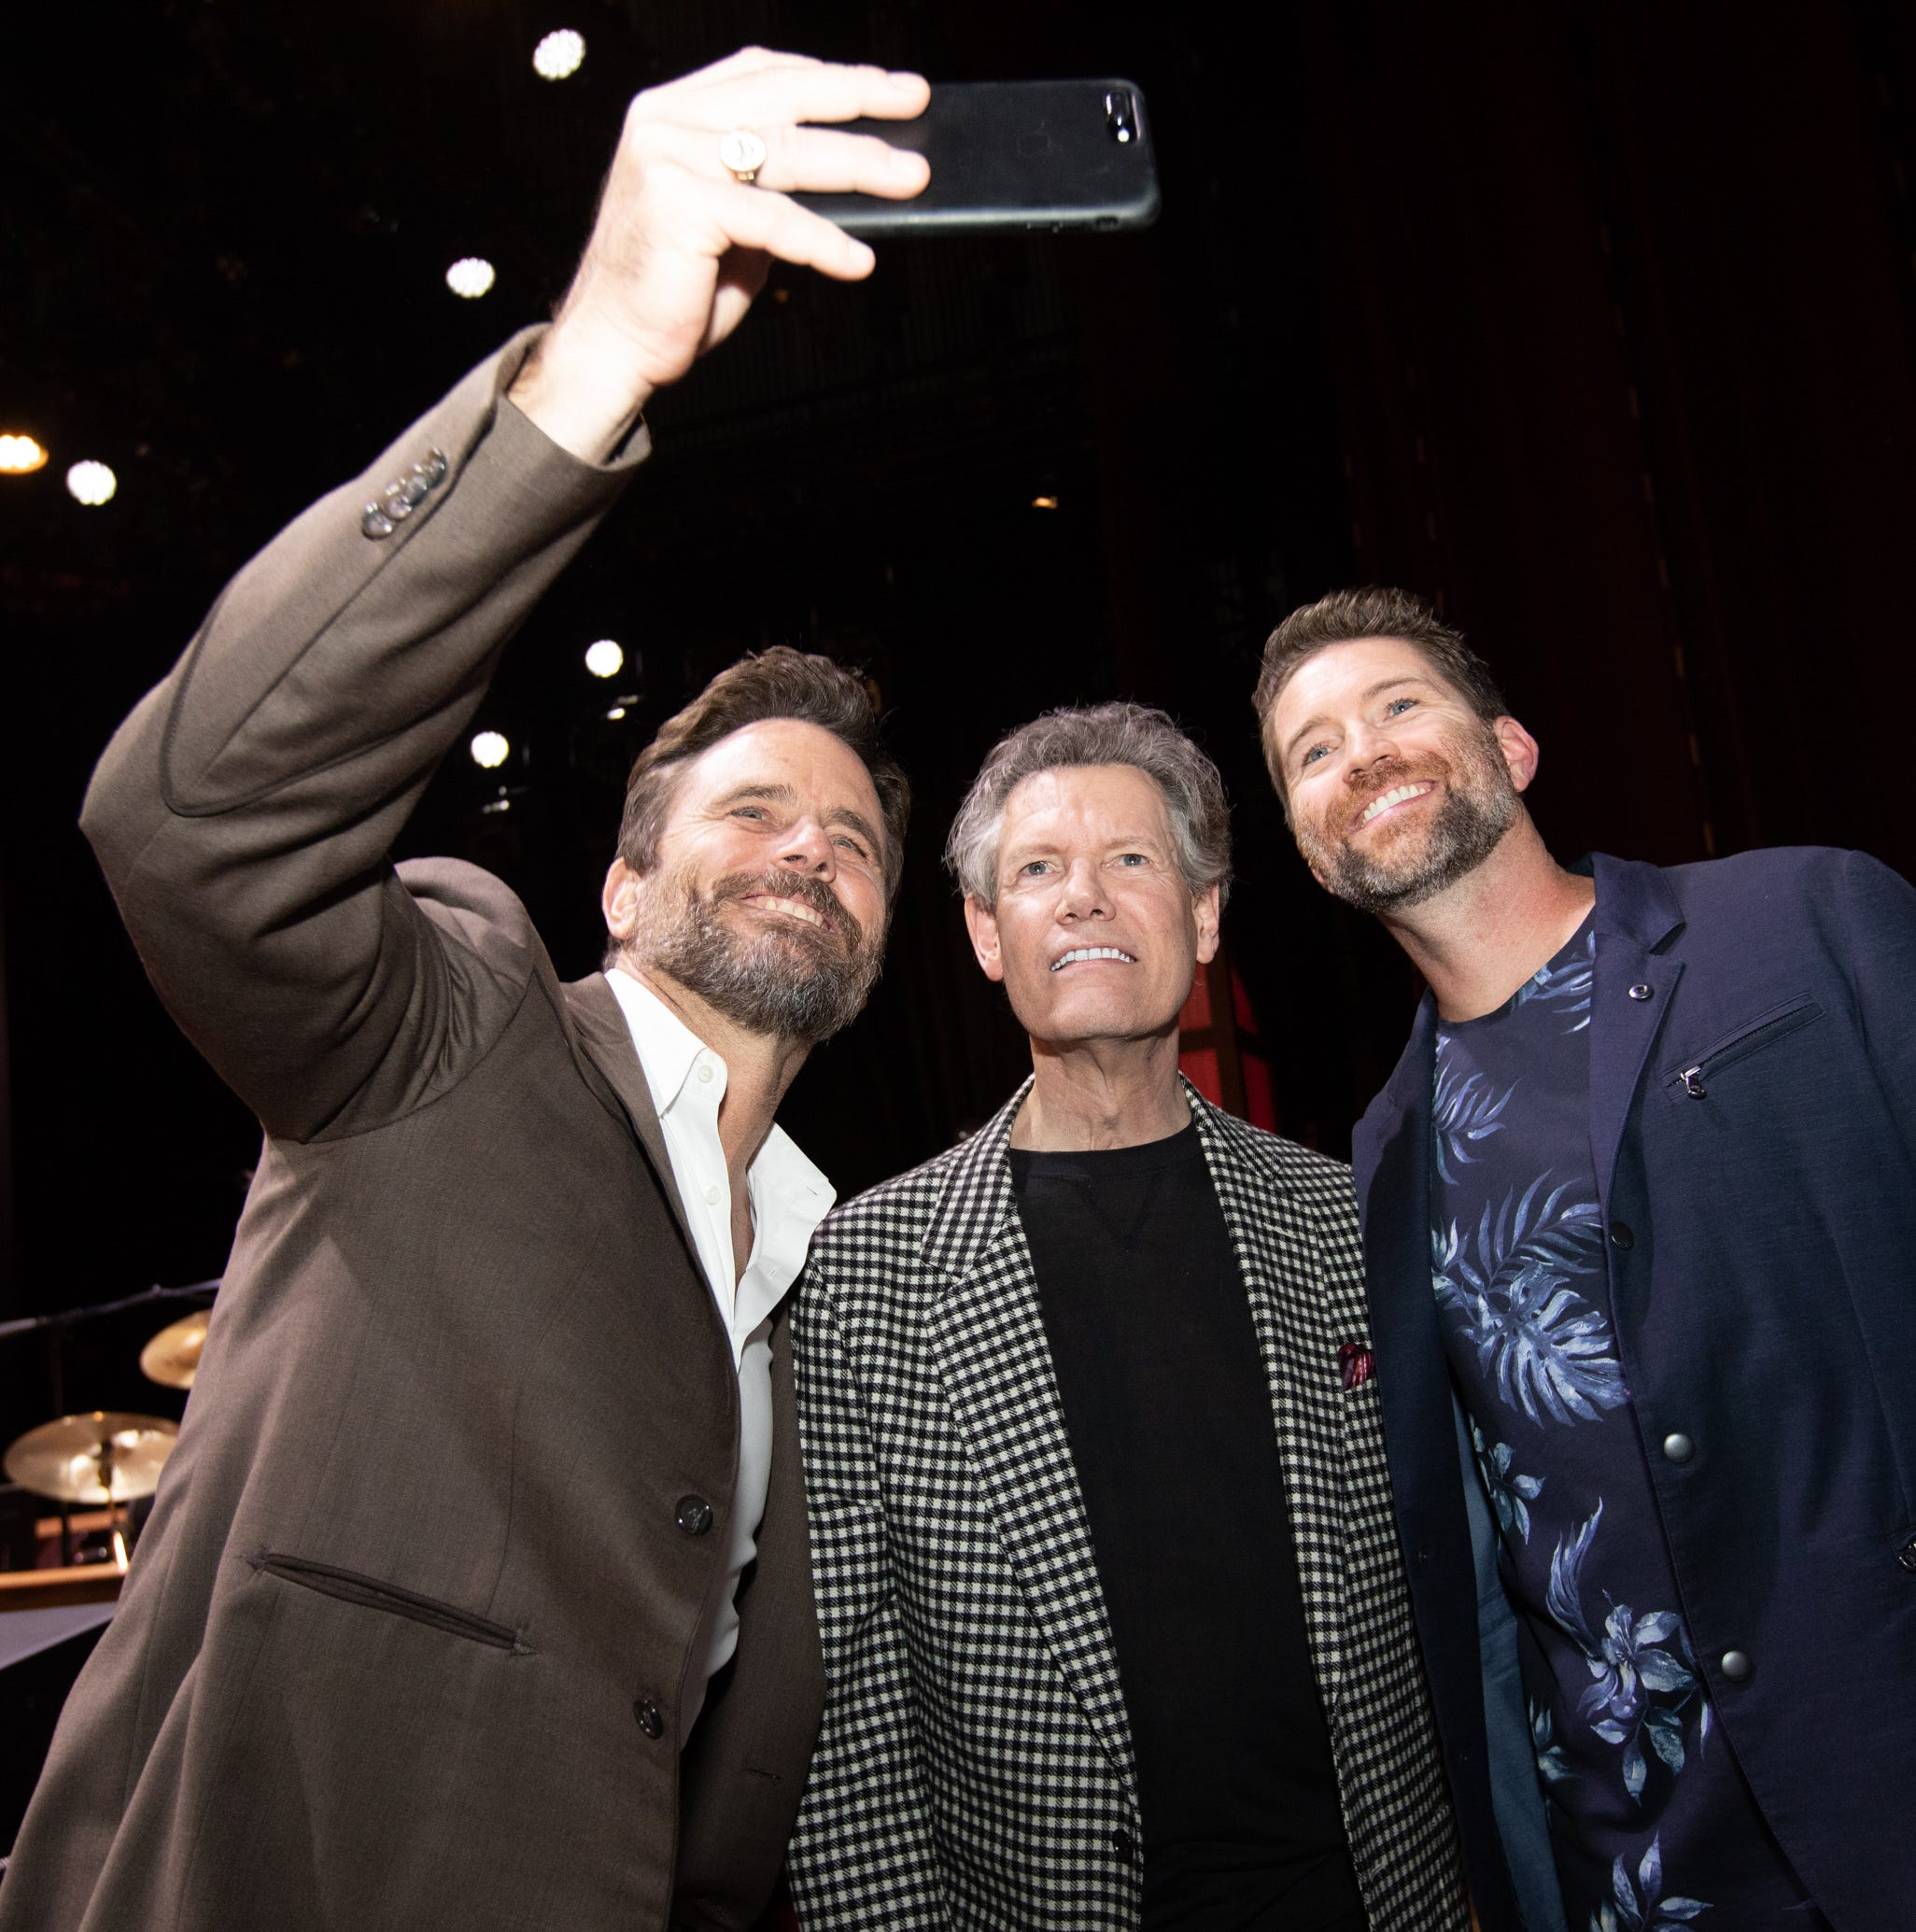 Randy Travis celebrates 60th birthday with a star-studded party at Grand Ole Opry